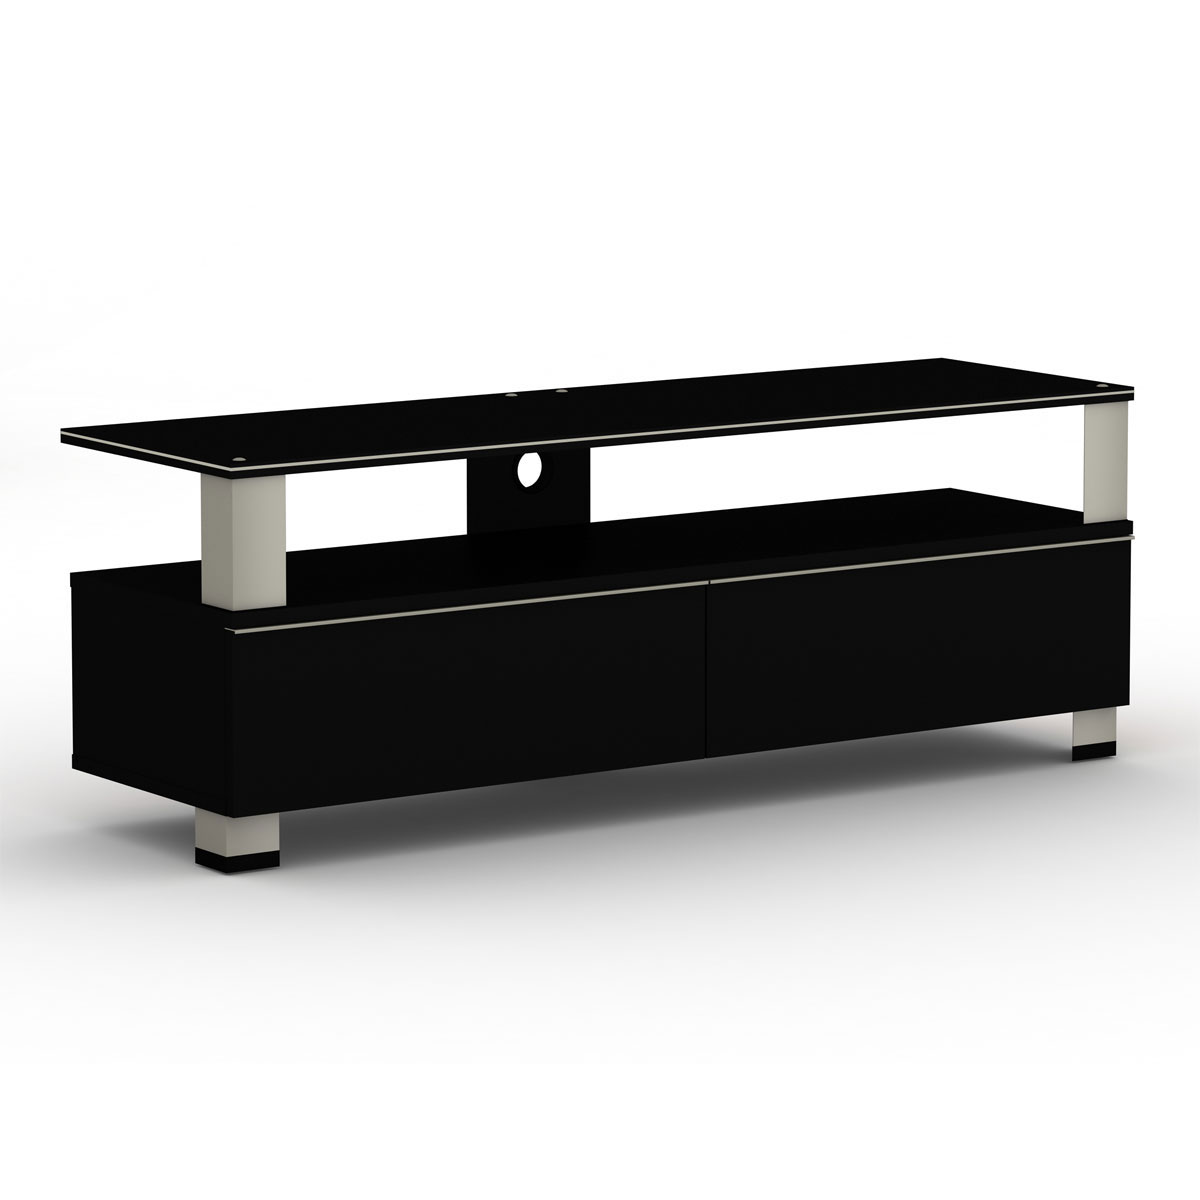 elmob tura tu 140 03 noir meuble tv elmob sur. Black Bedroom Furniture Sets. Home Design Ideas